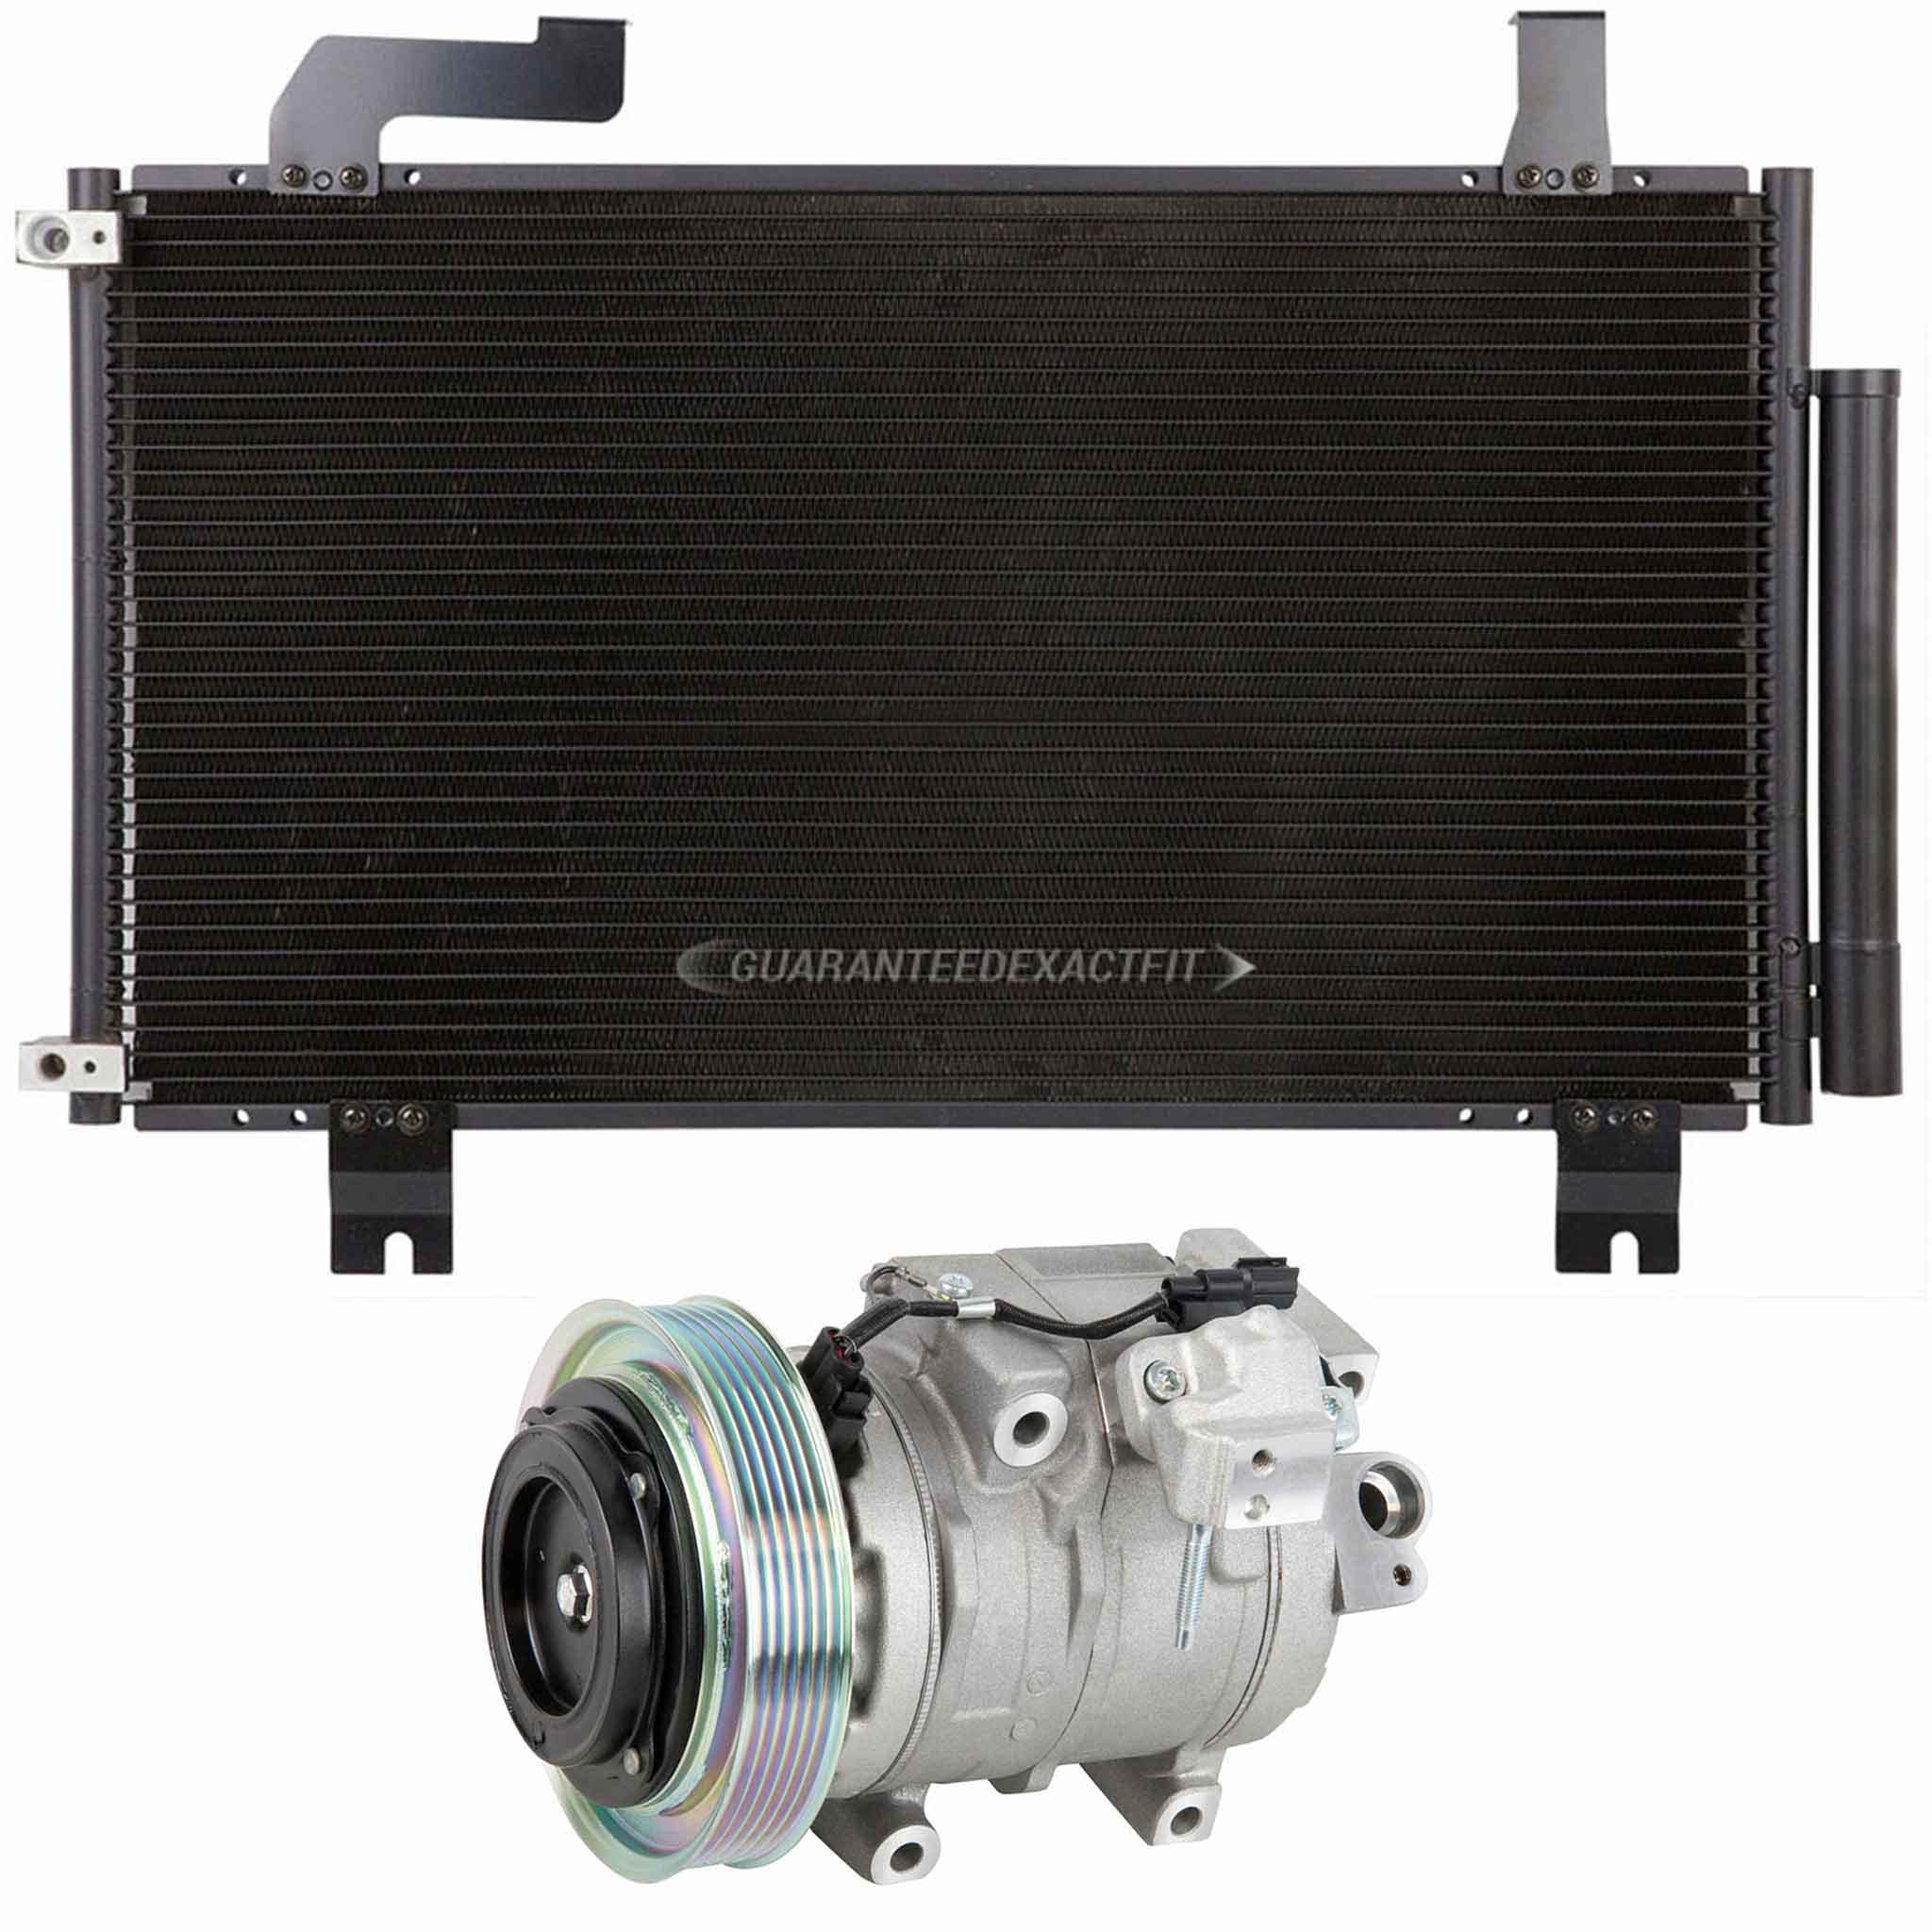 2011 Acura TSX A/C Compressor And Components Kit 3.5L